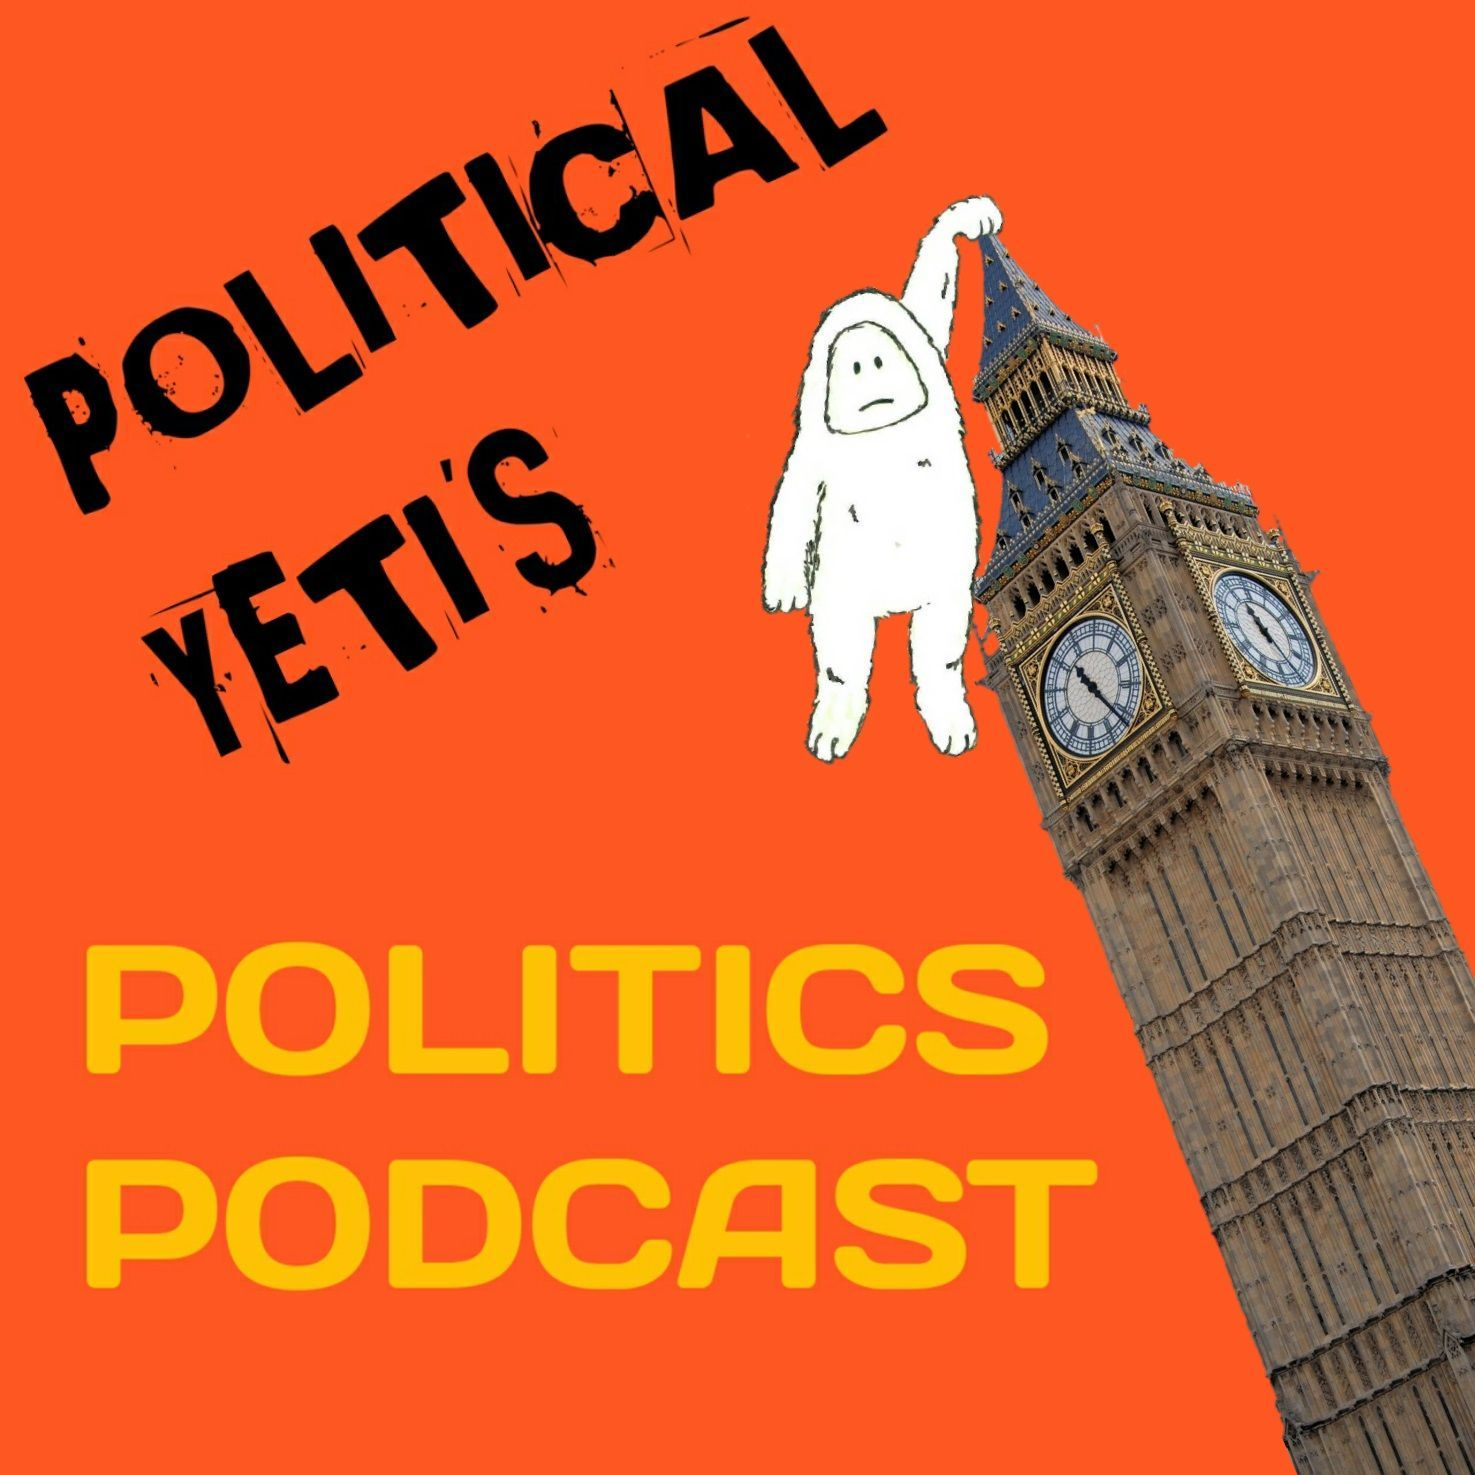 EPISODE 54: It's Neil Gray MP and Rachel Wearmouth from Wearmouth